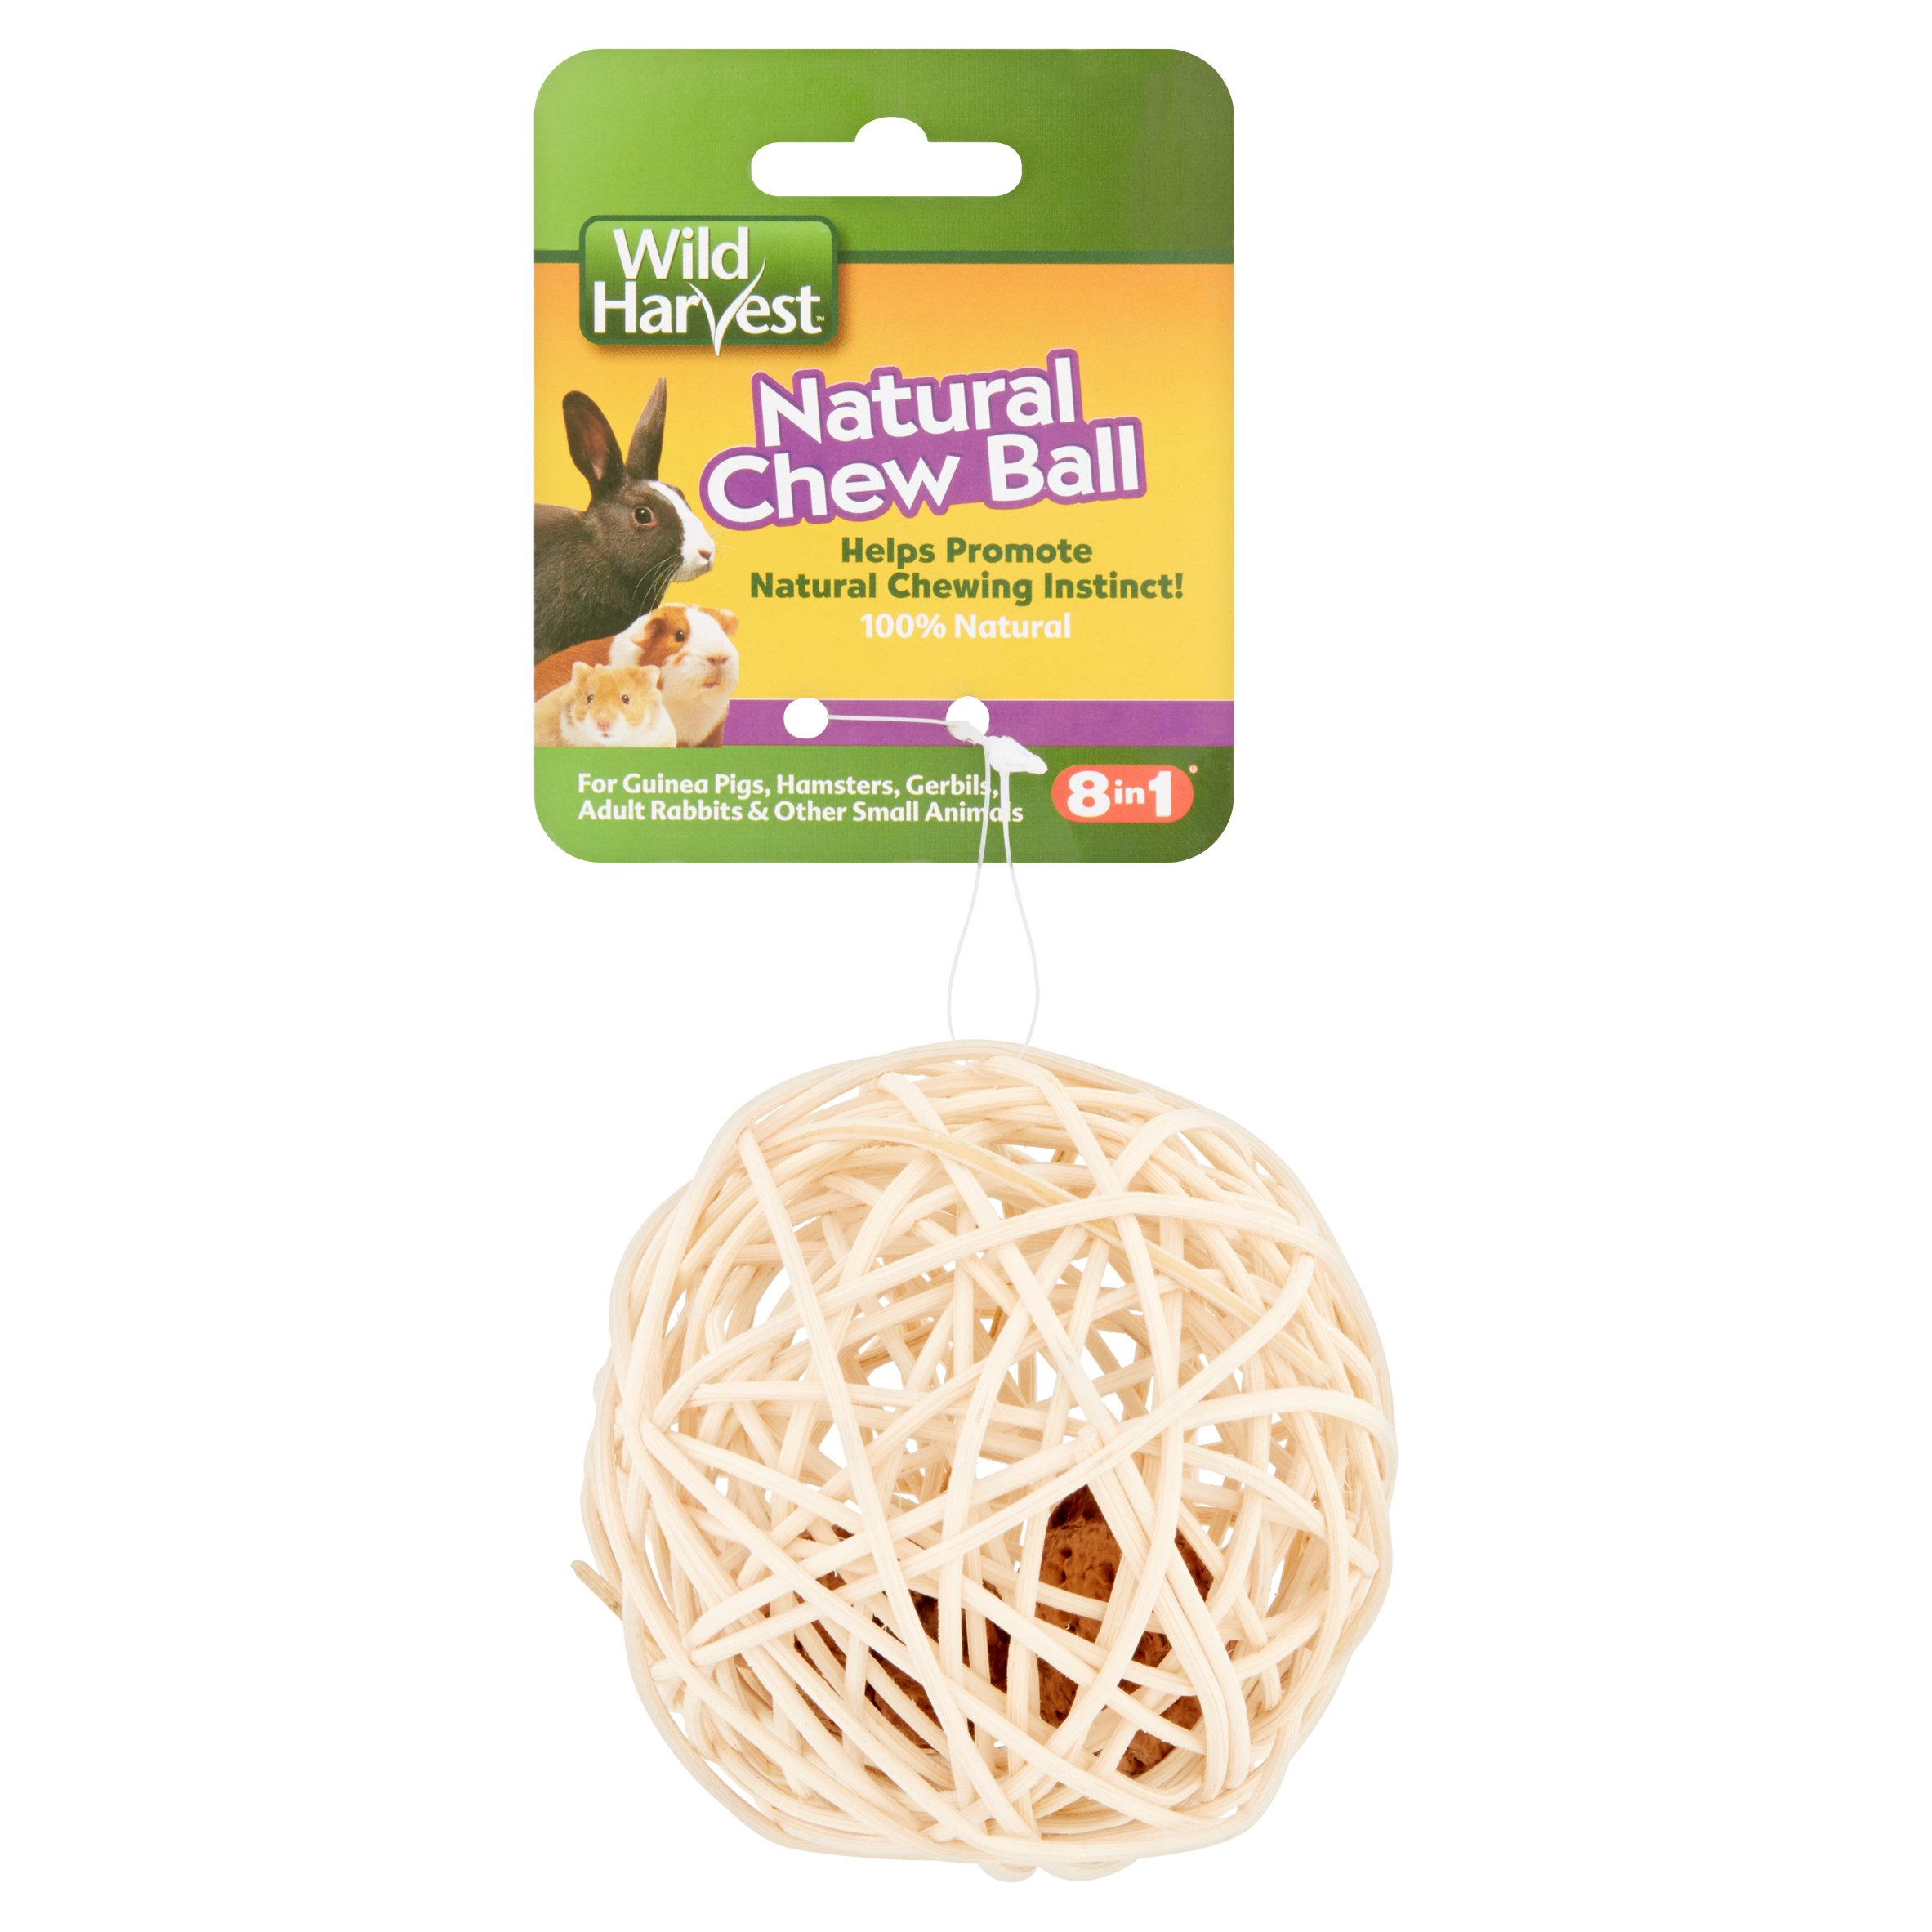 Wild Harvest Chew Ball for Guinea Pigs & Other Small Animals